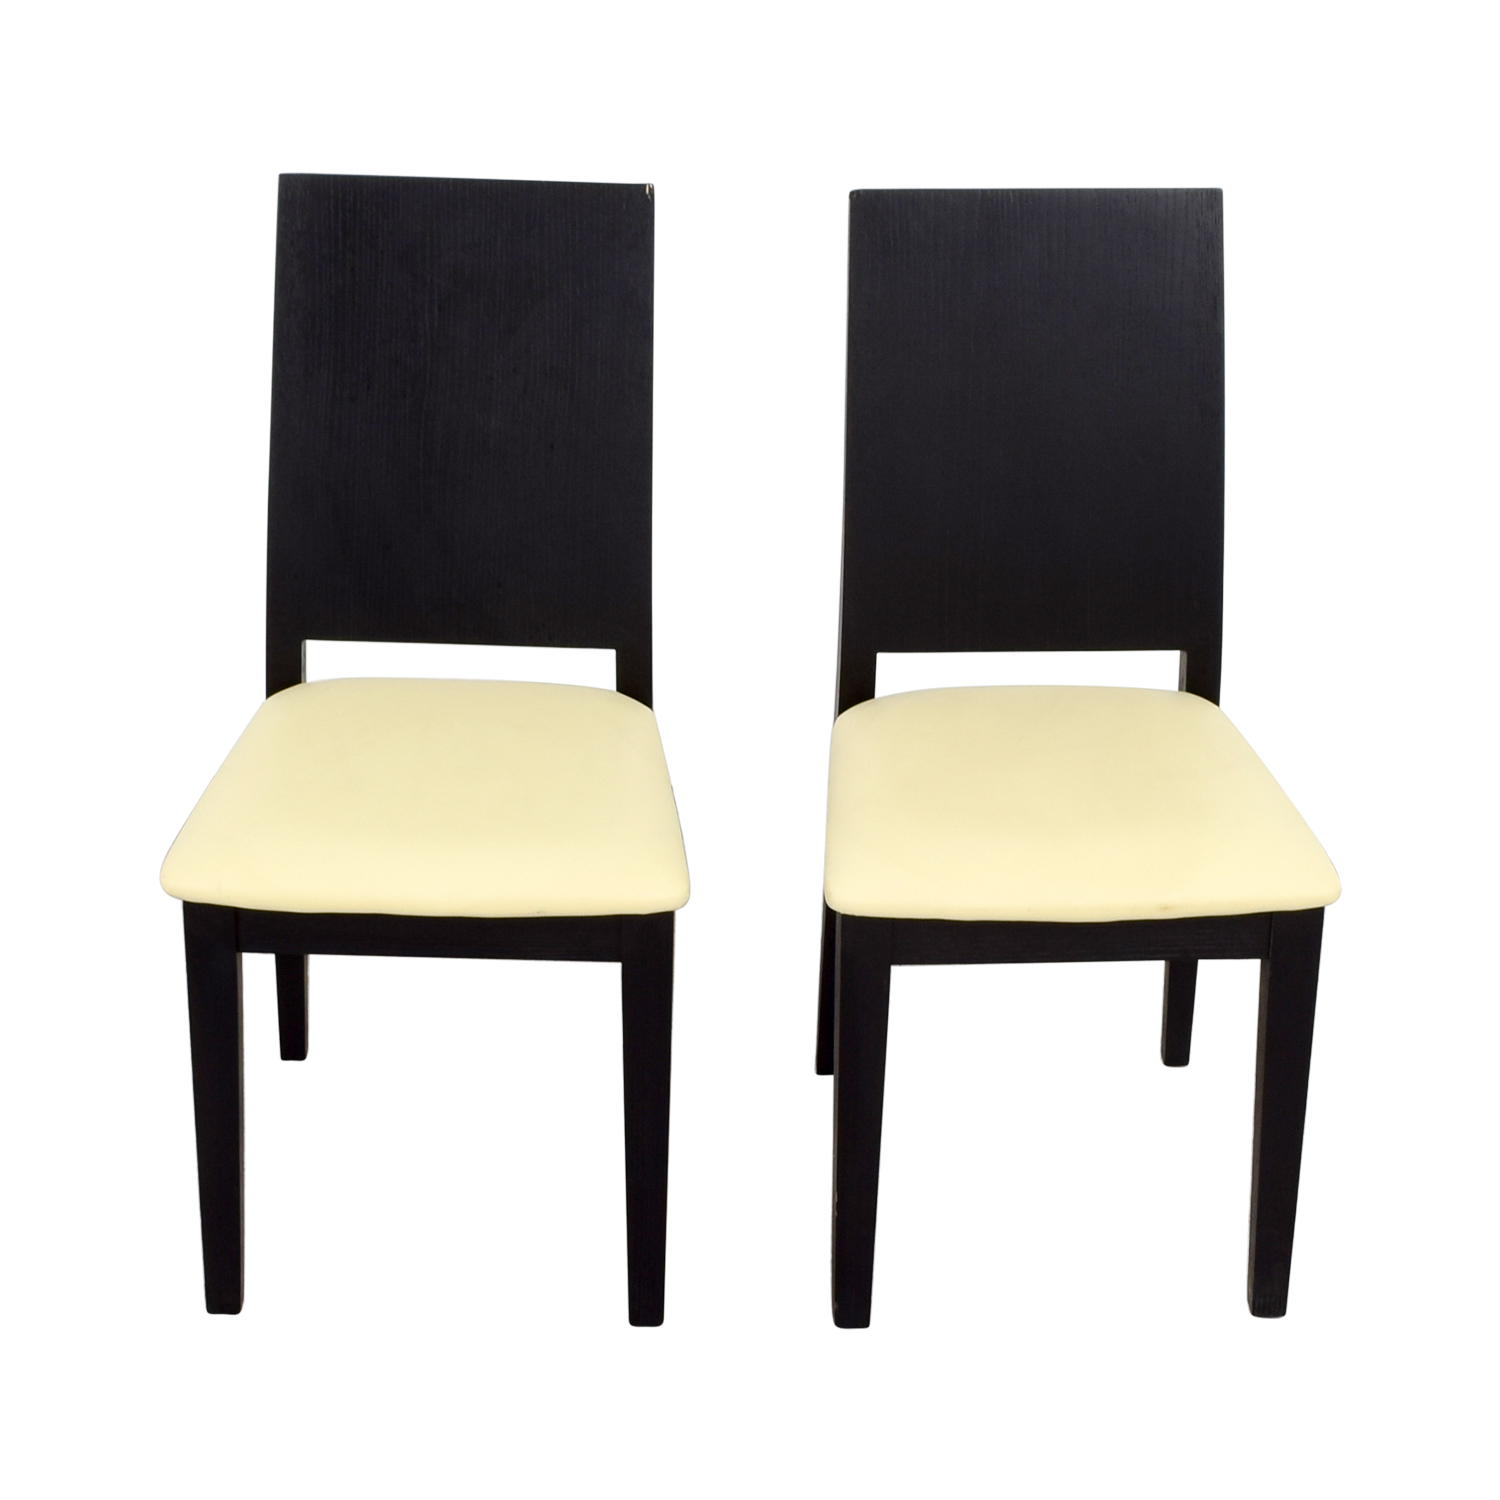 shop Black Frame with White Seat Dining Chairs